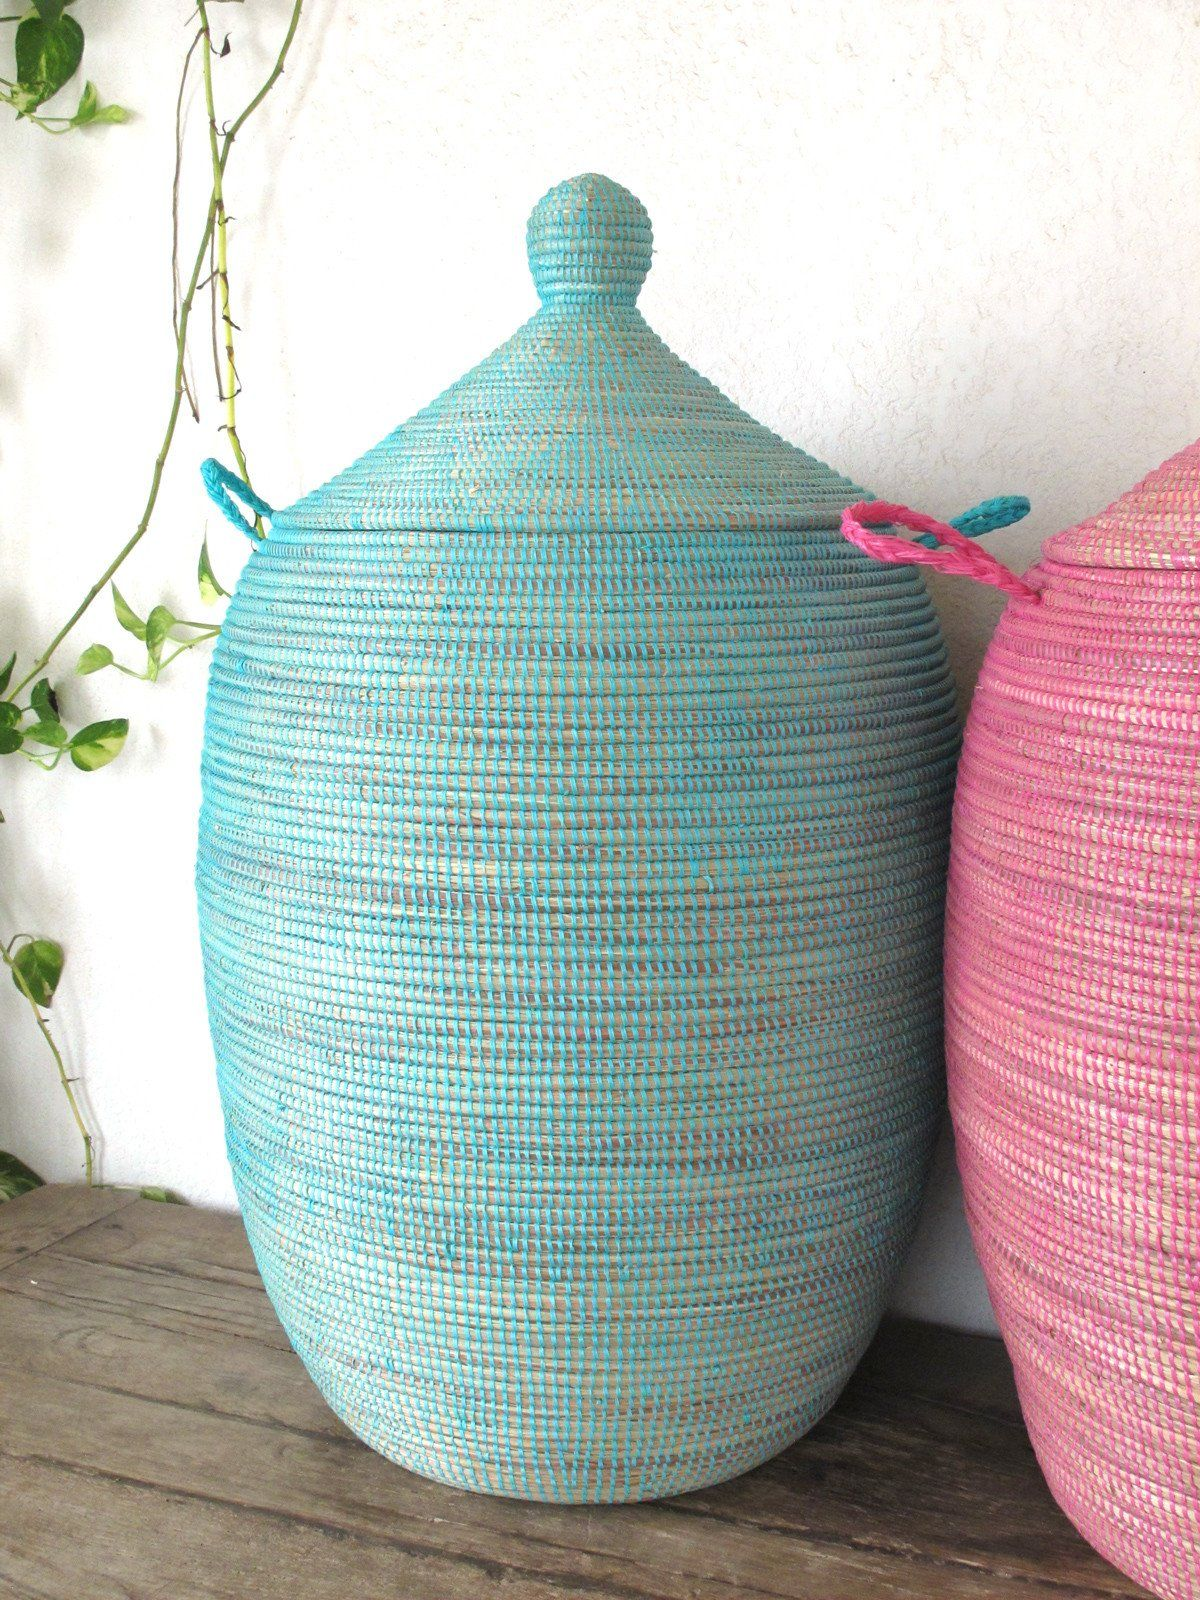 Laundry Basket Xl In Plain Turquoise Blue Hamper African